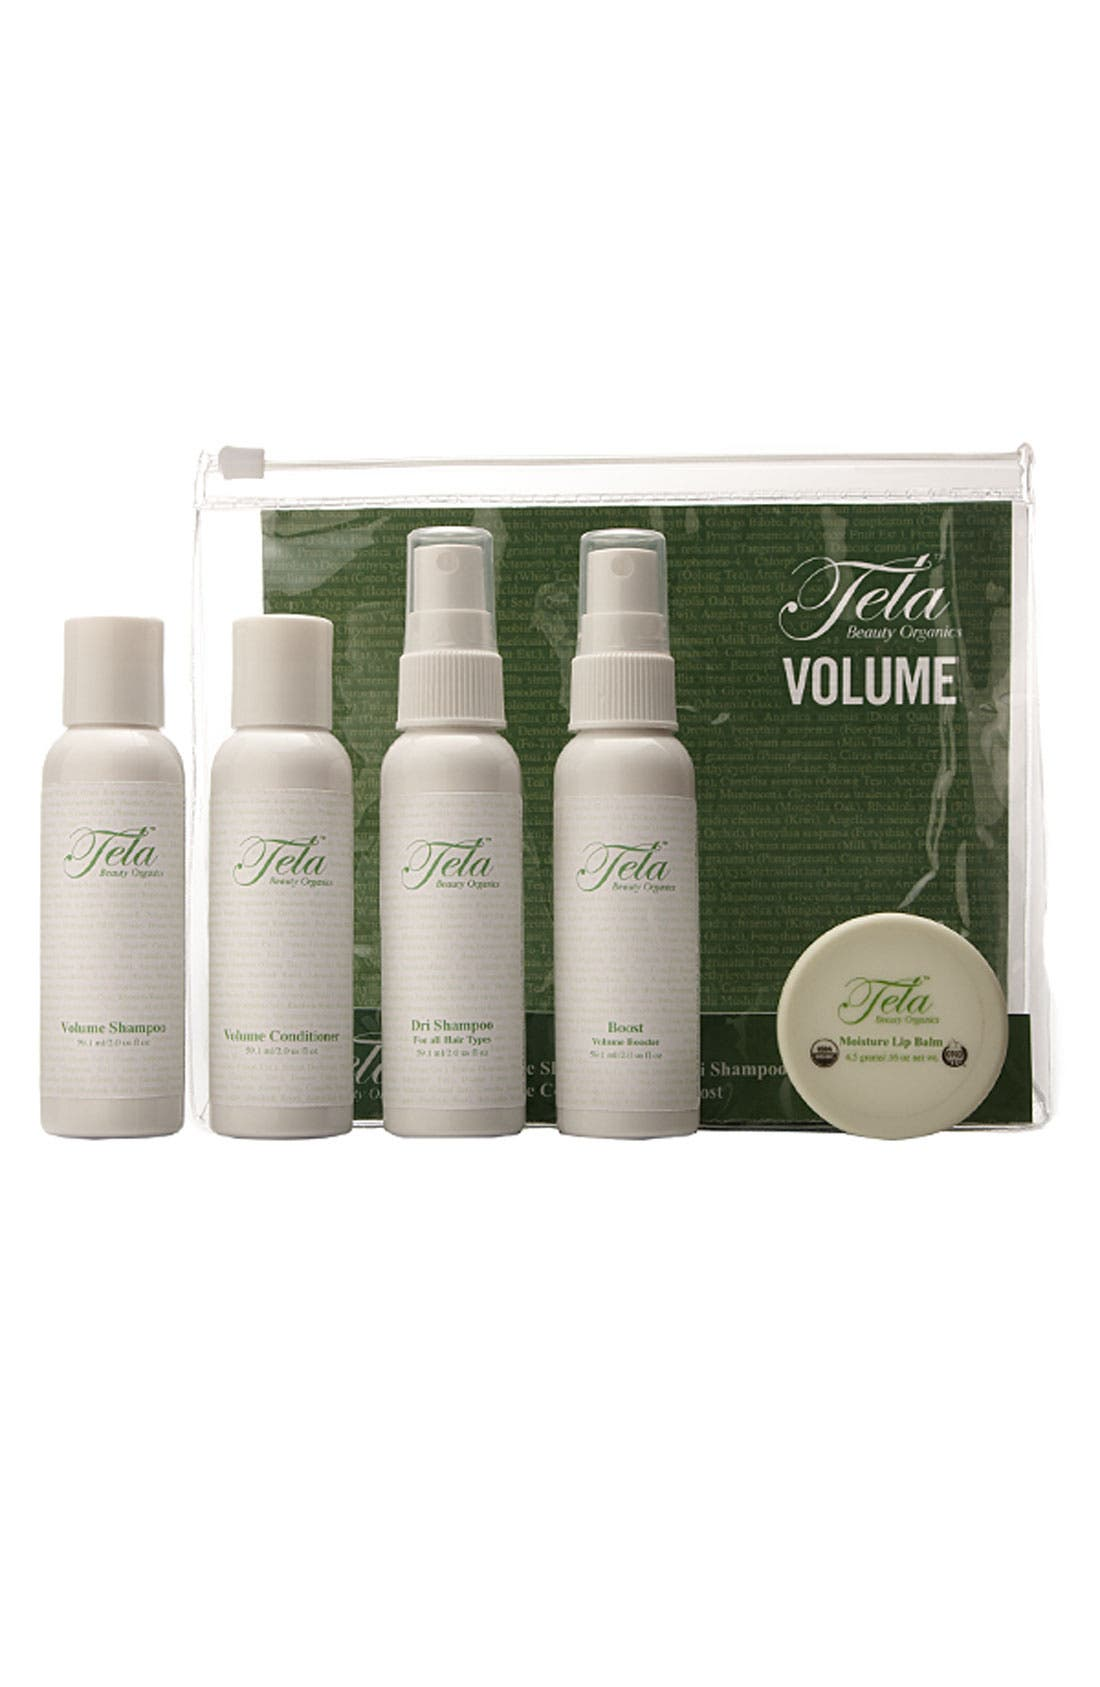 Alternate Image 1 Selected - Tela Beauty Organics Hair & Styling Kit (Nordstrom Exclusive) ($48 Value)